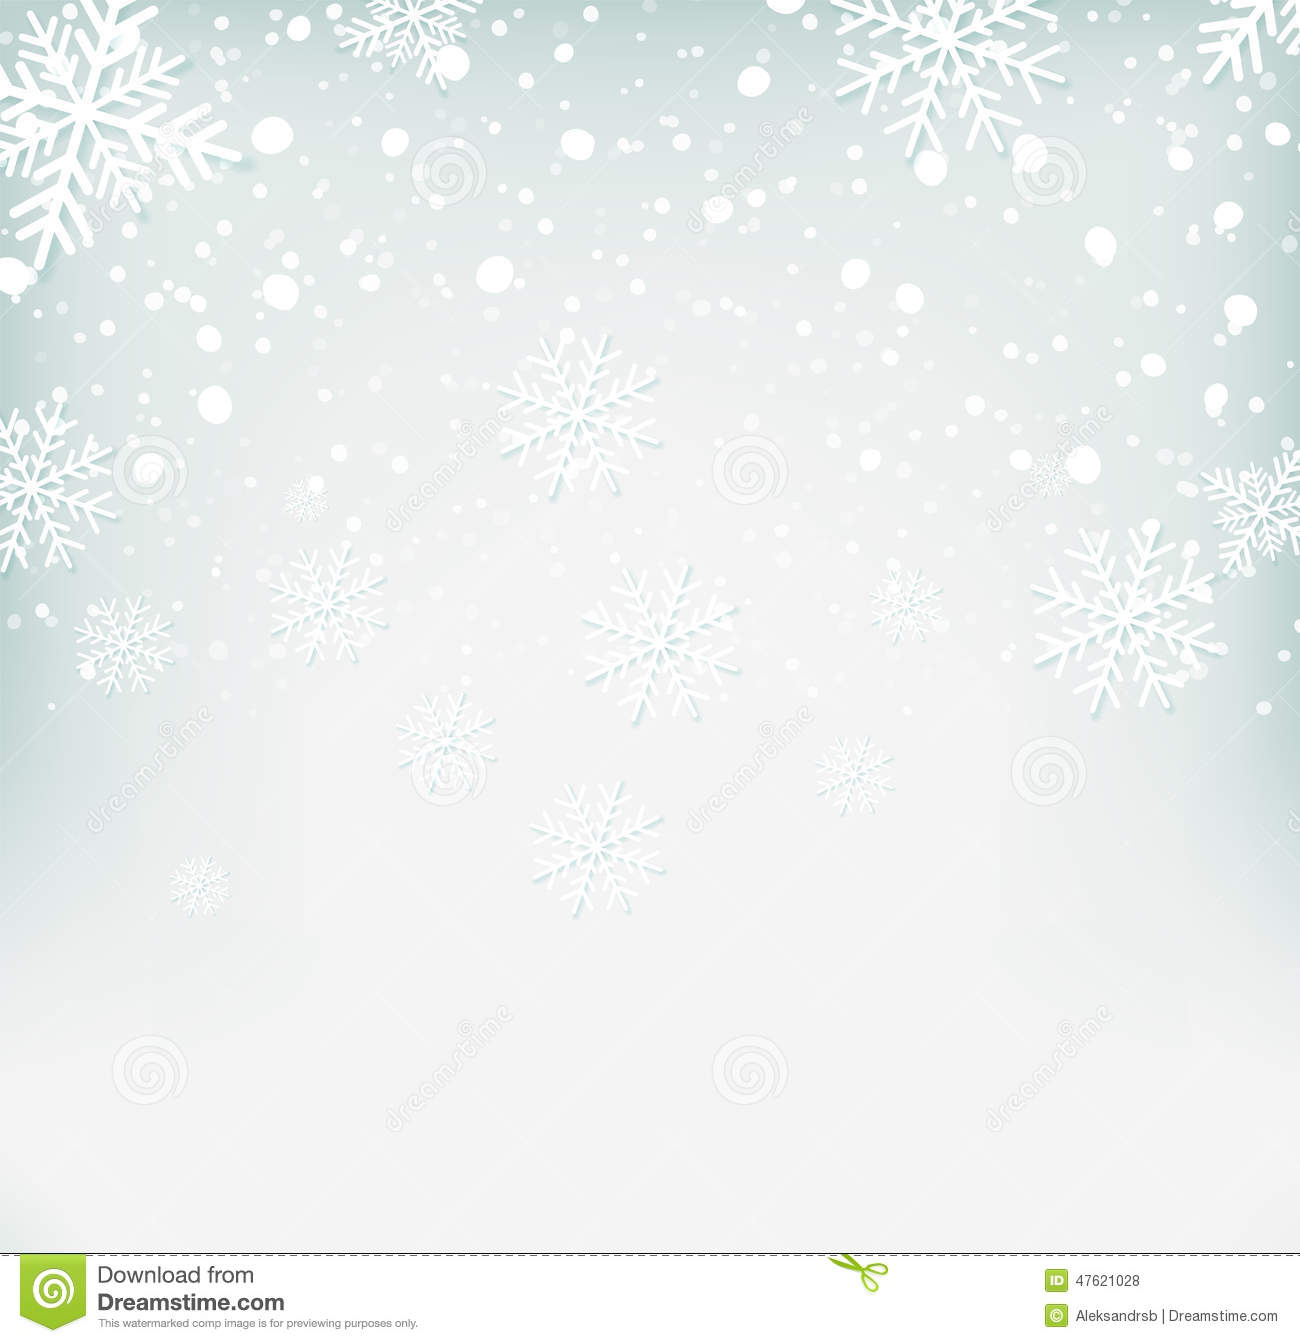 Christmas Wallpaper Snow Falling Winter Background With Snowflakes Stock Vector